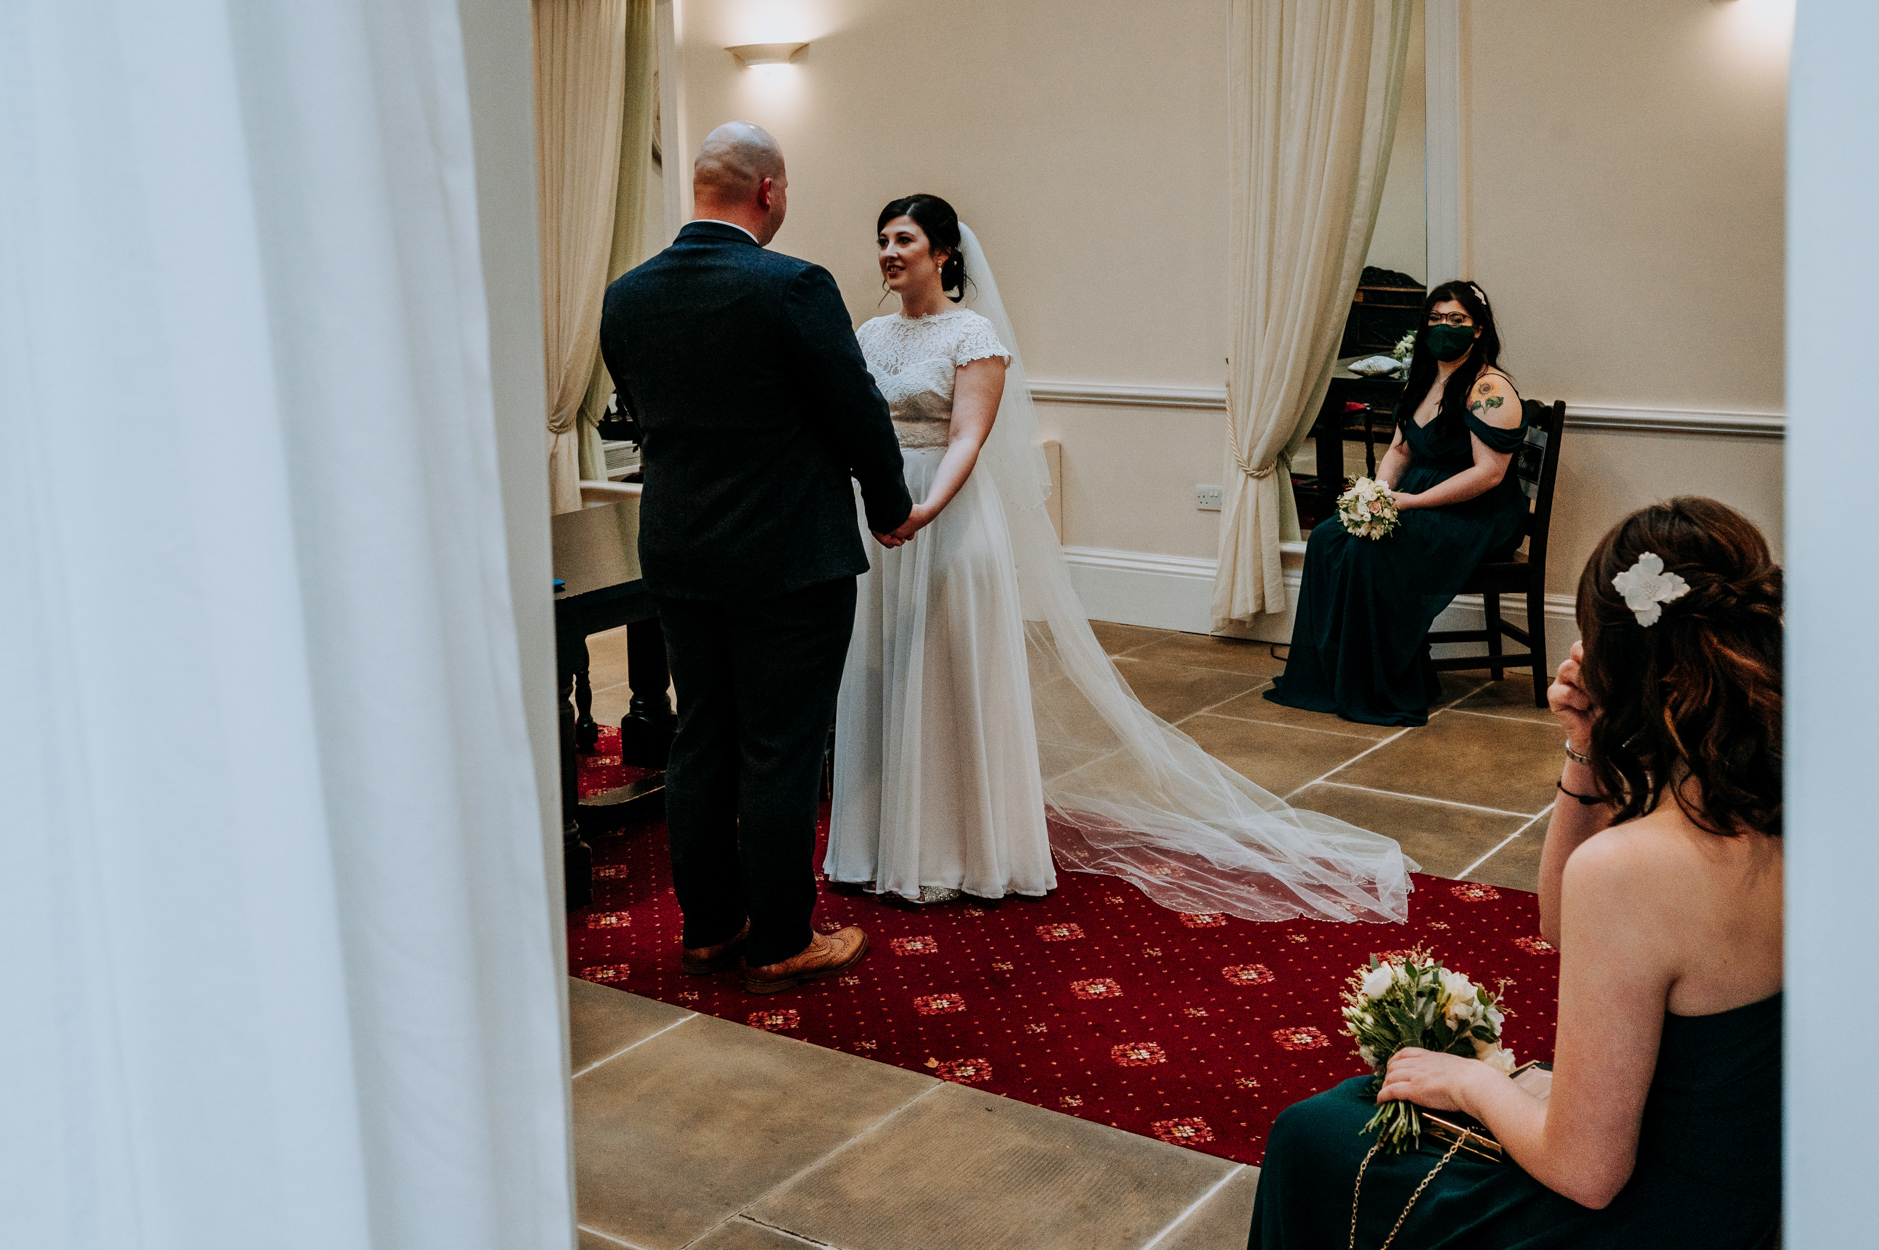 York Registry Office Wedding Ceremony Picture | The wedding ceremony begins